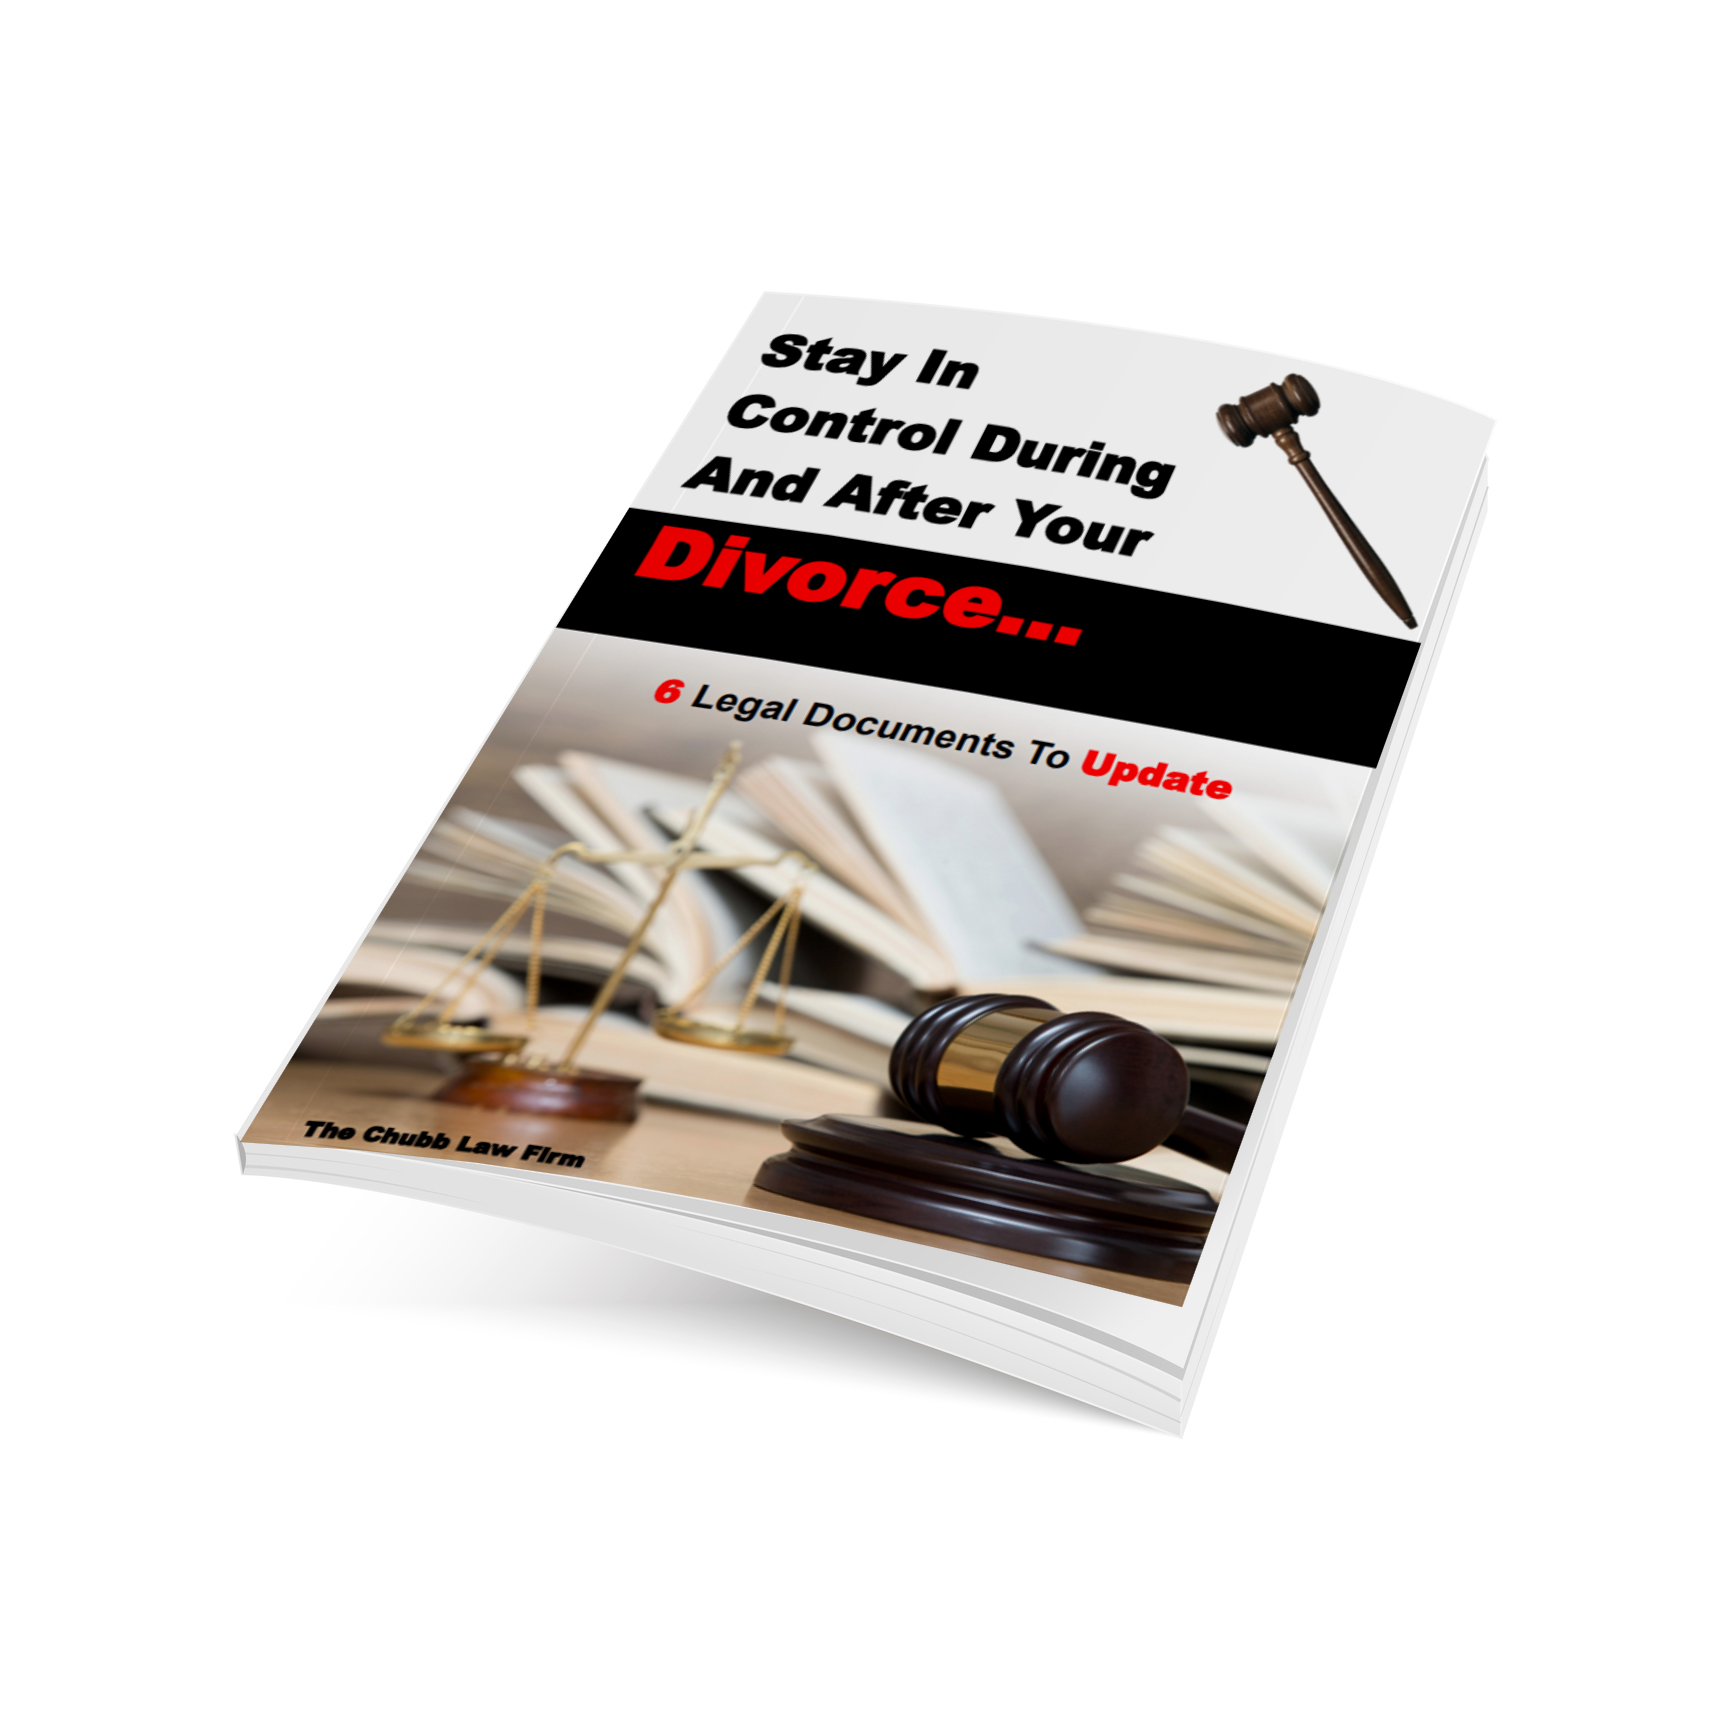 Stay in Control During and After Your Divorce